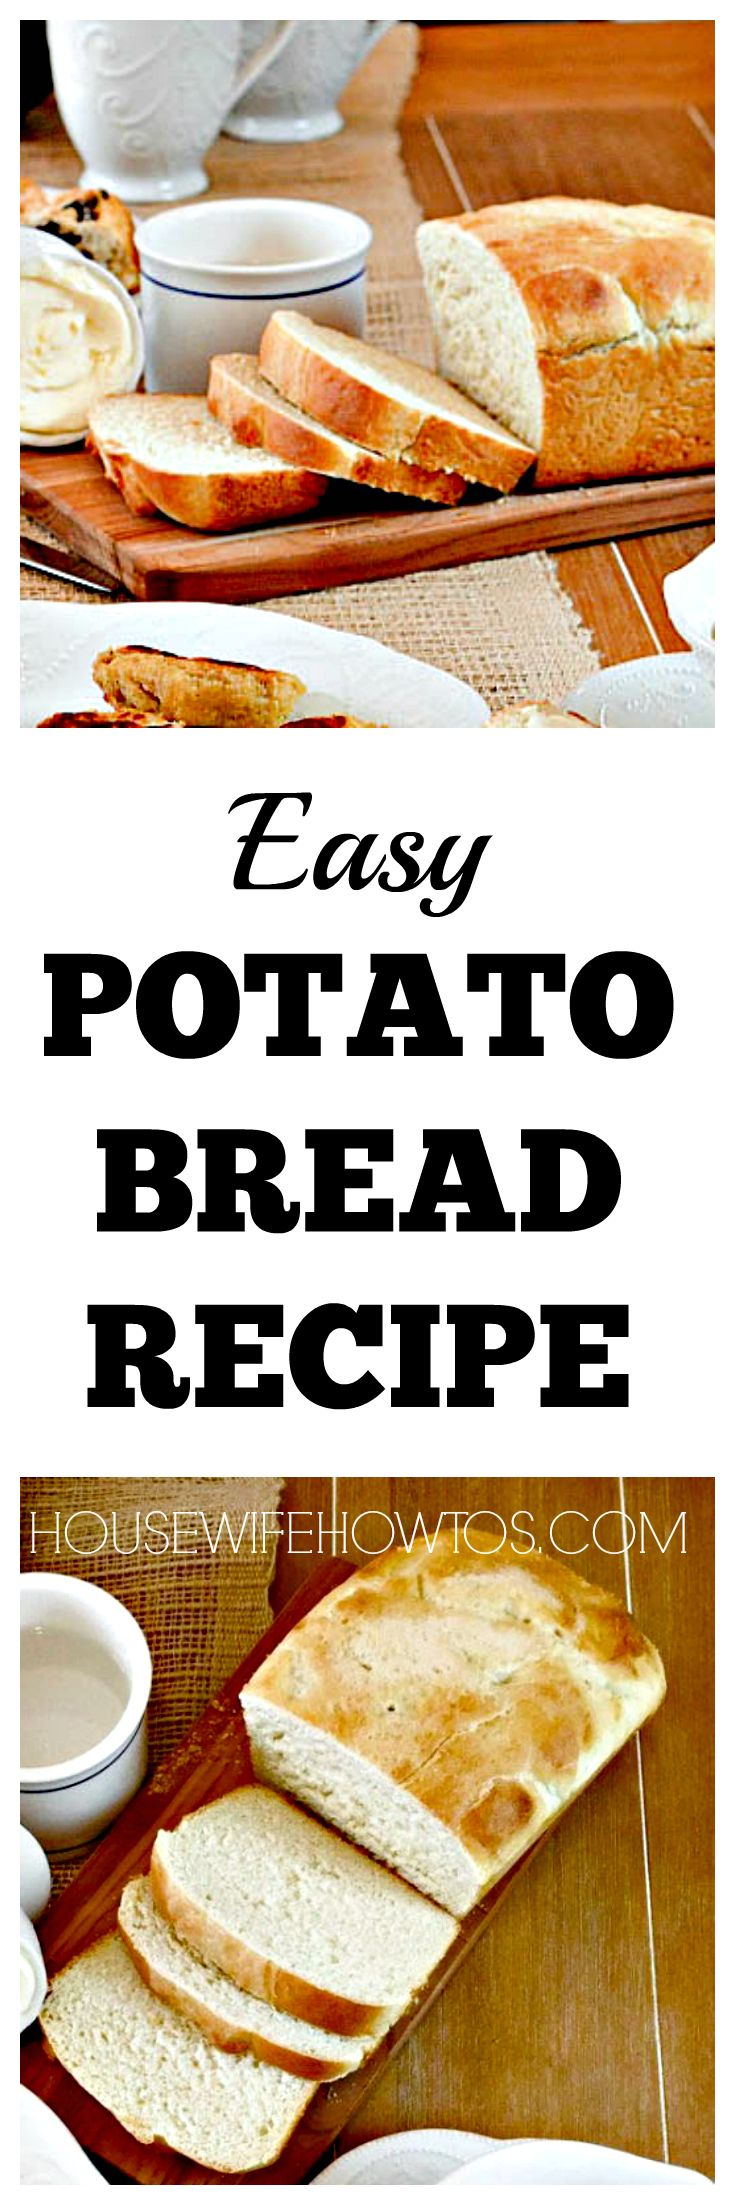 Potato Bread Recipe - Easy to make and you can keep the dough in the fridge for fresh loaves all week.